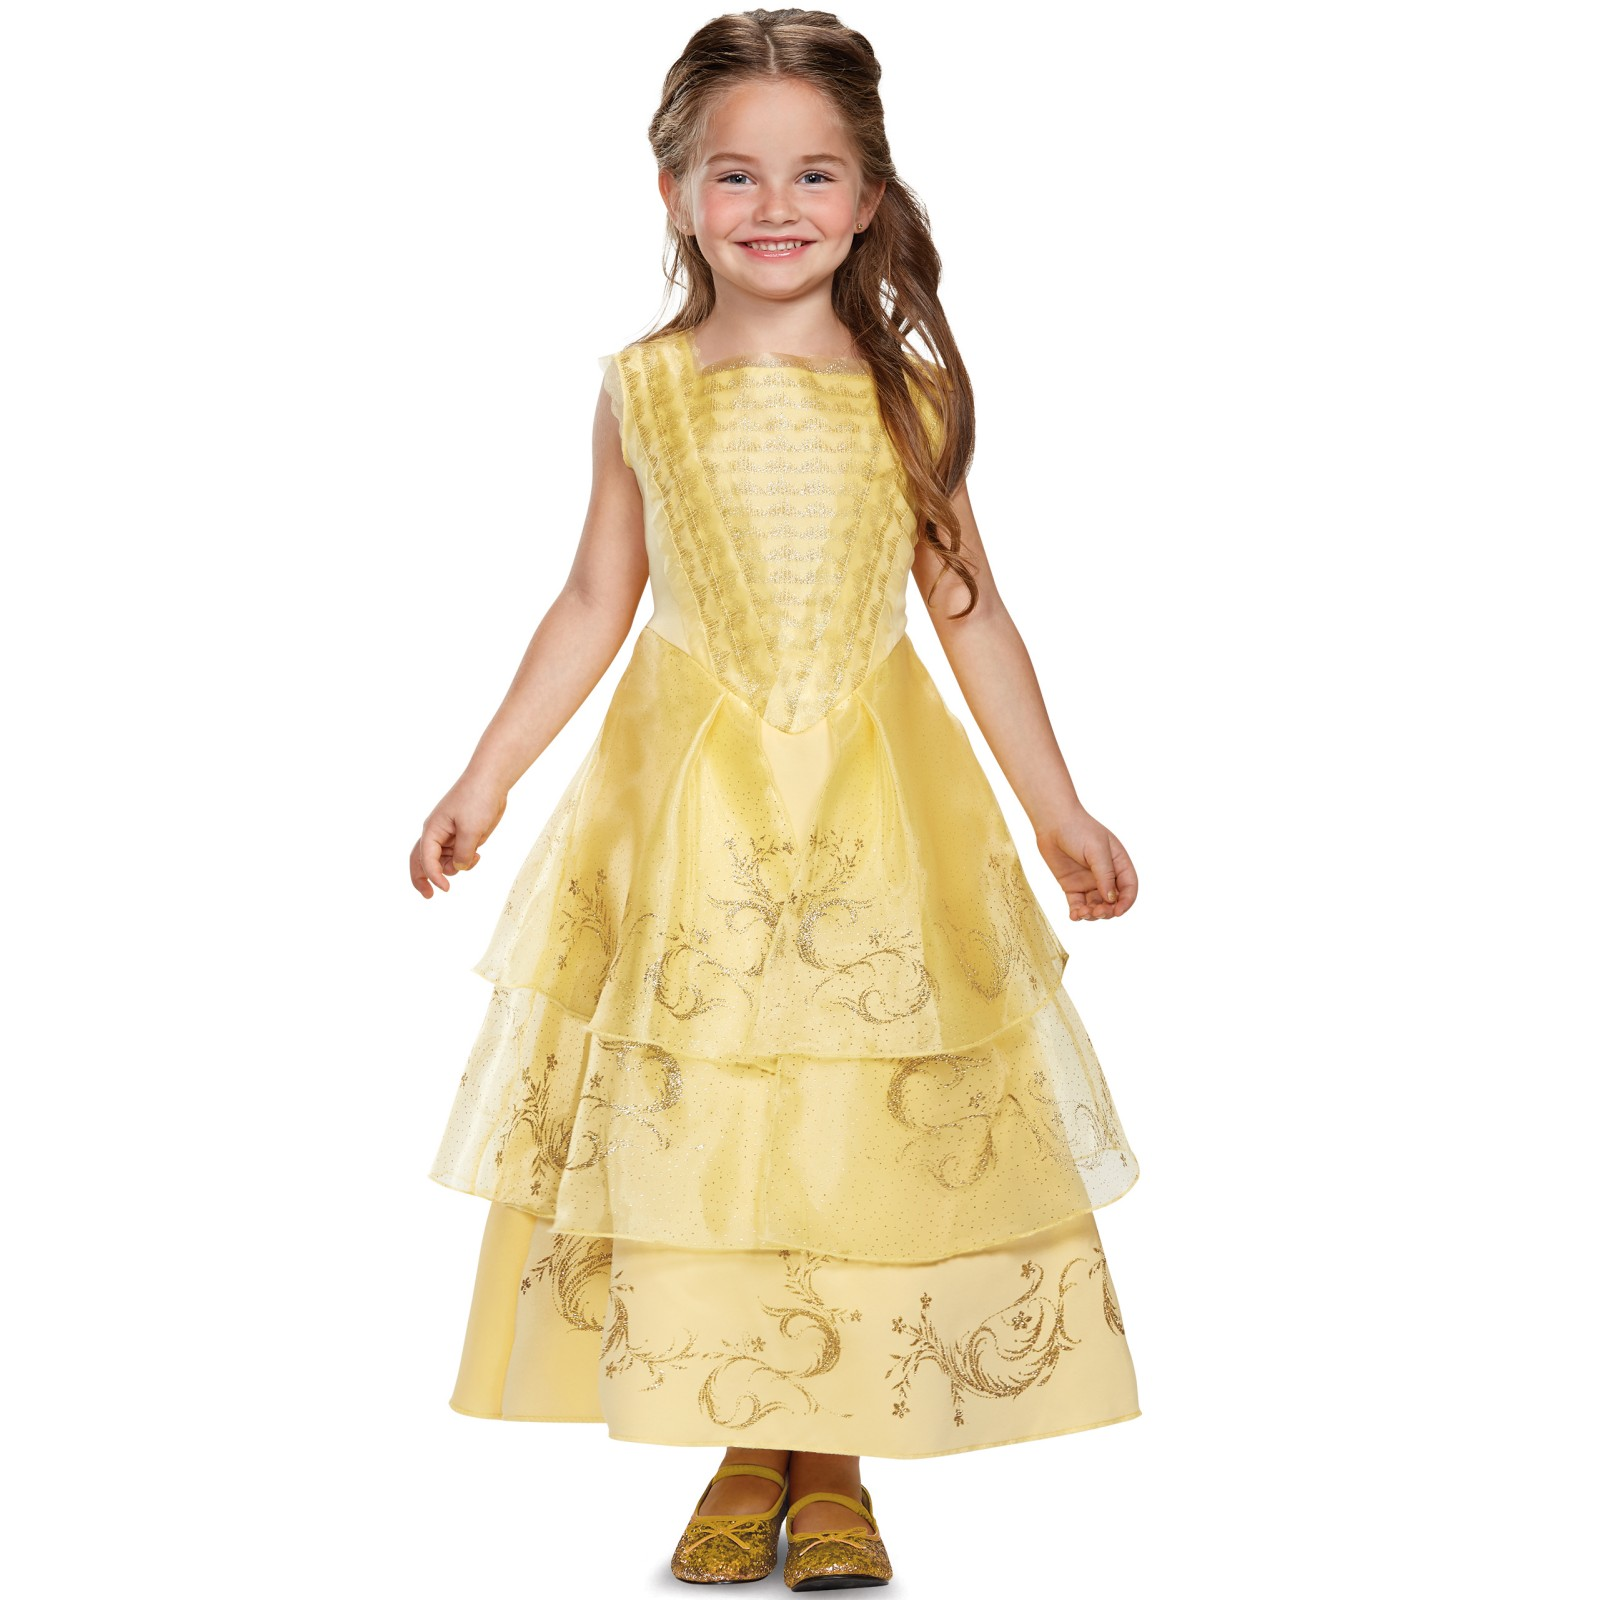 Disney beauty and the beast: belle ball gown deluxe toddler costume 3-4t